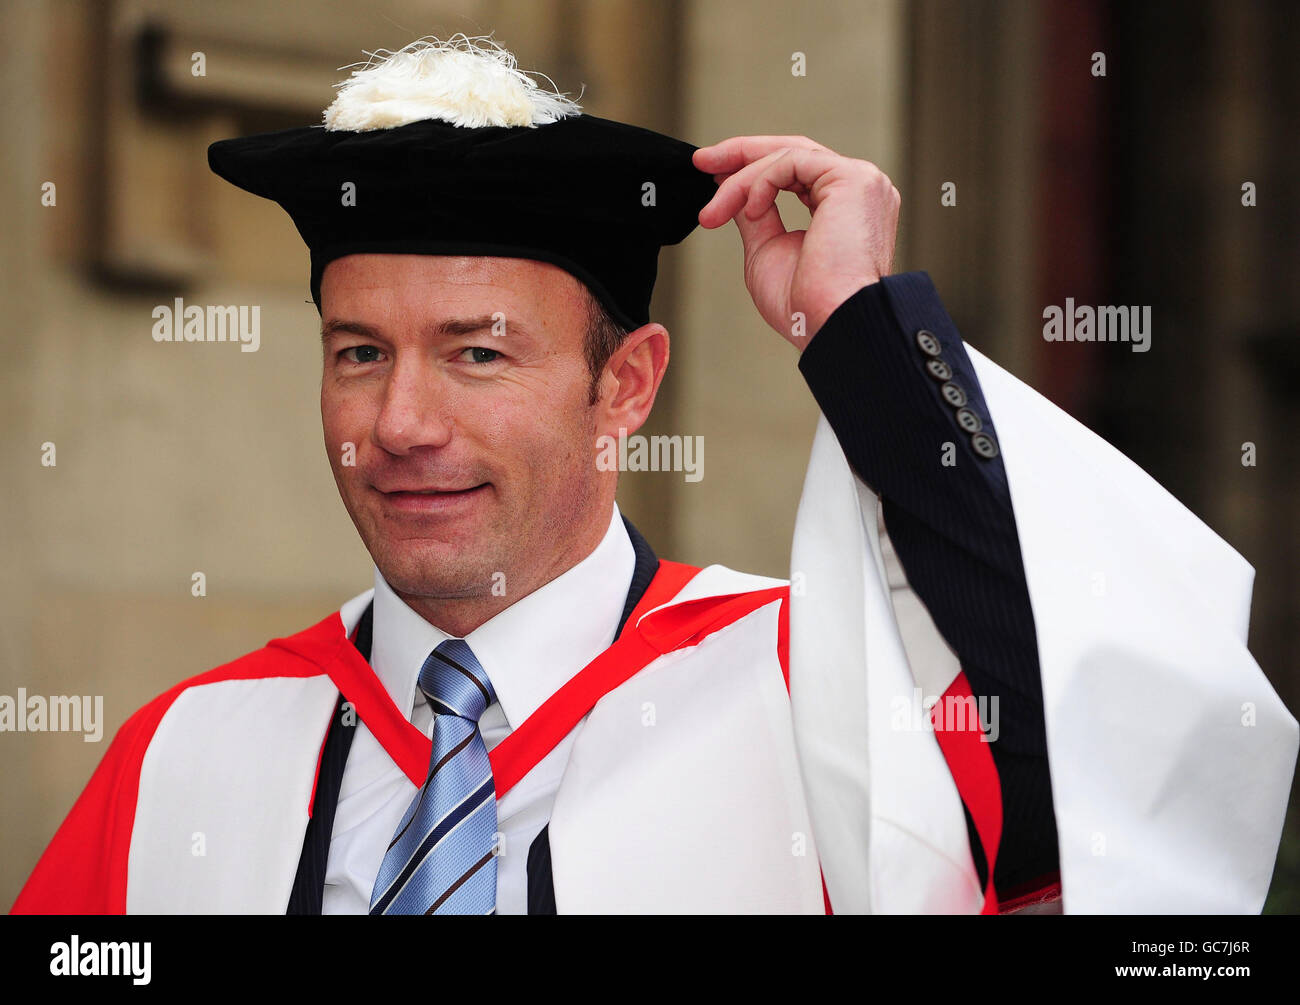 Alan Shearer collects honorary degree - Stock Image